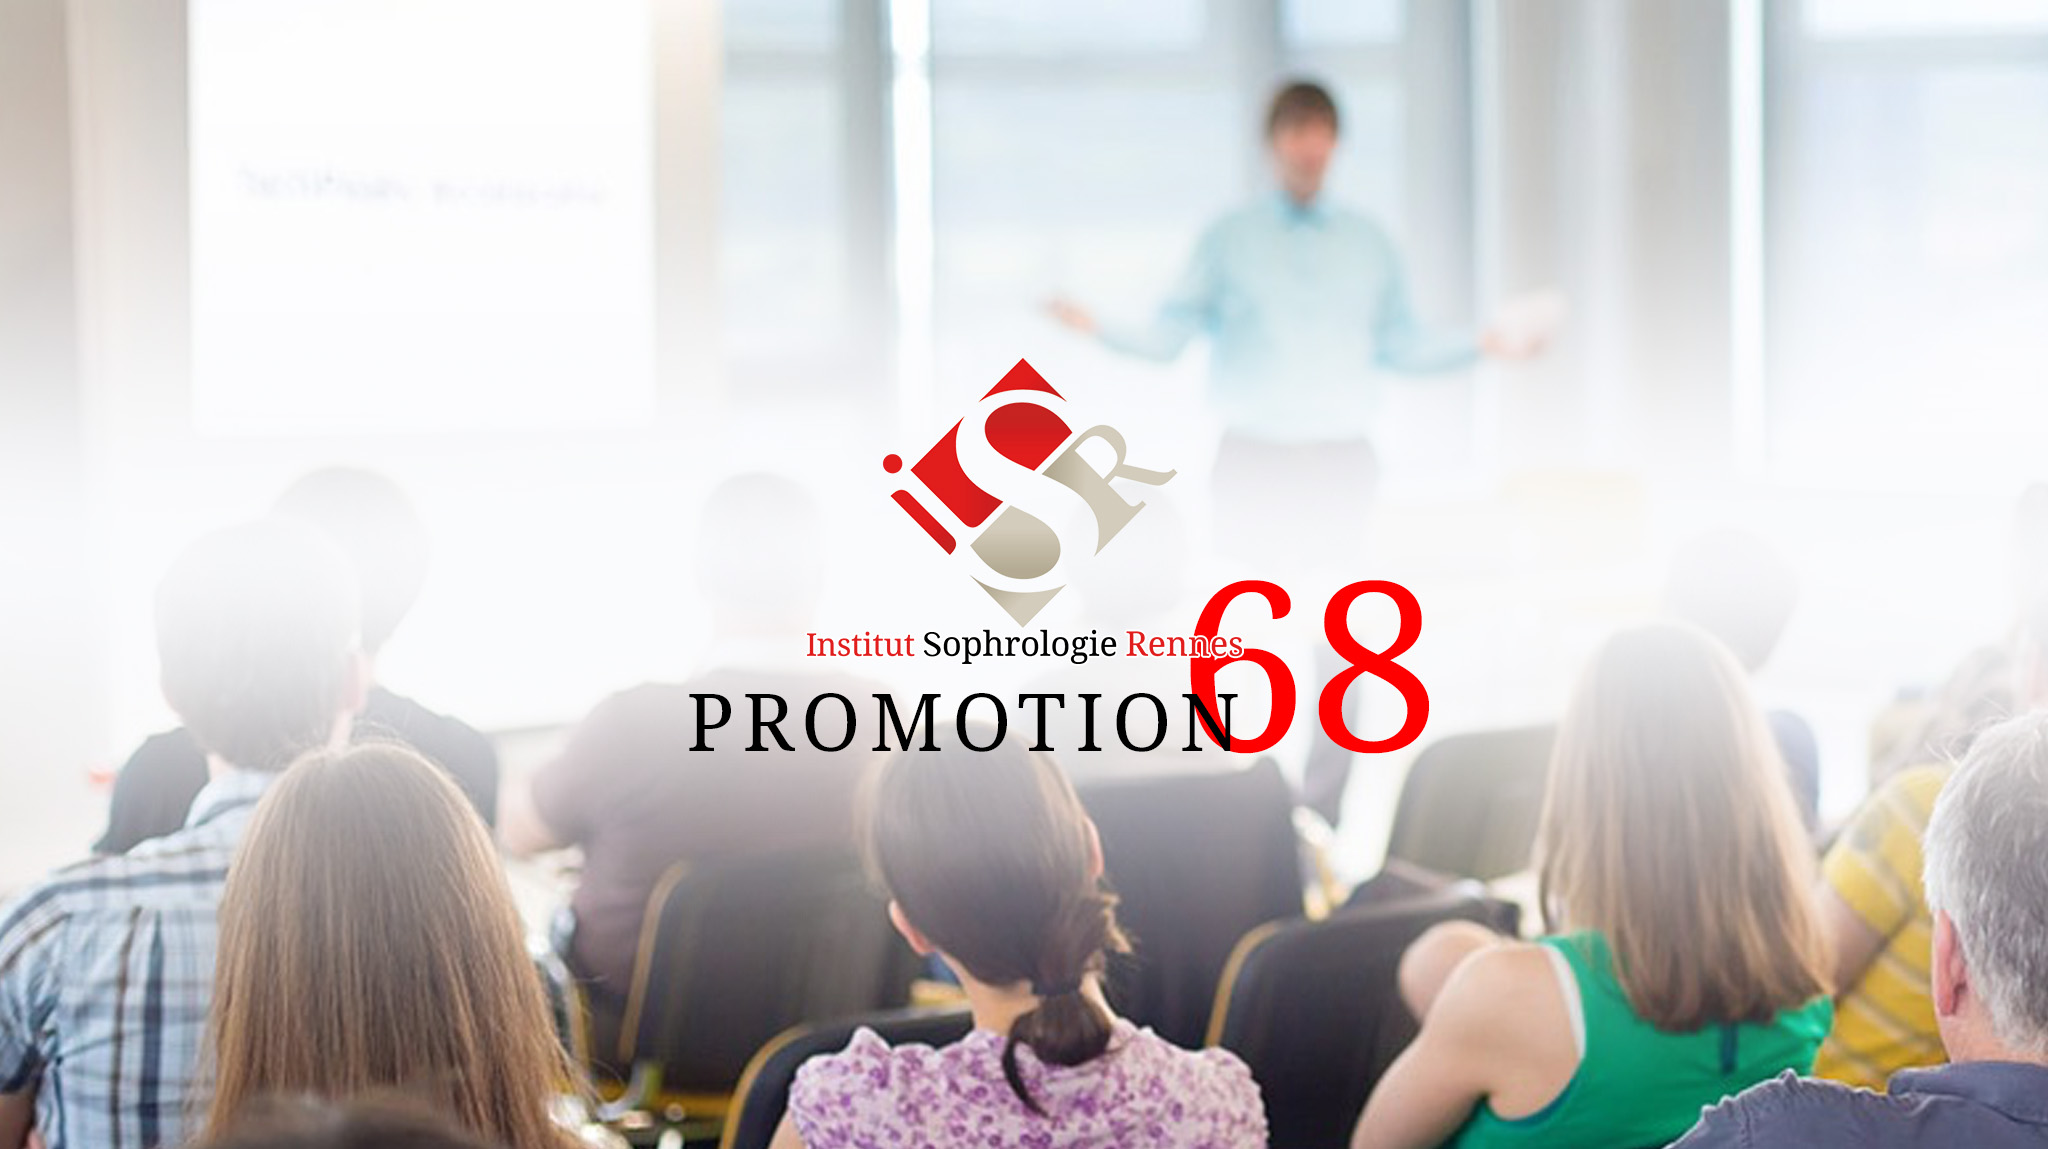 Promotion 68 - ISR